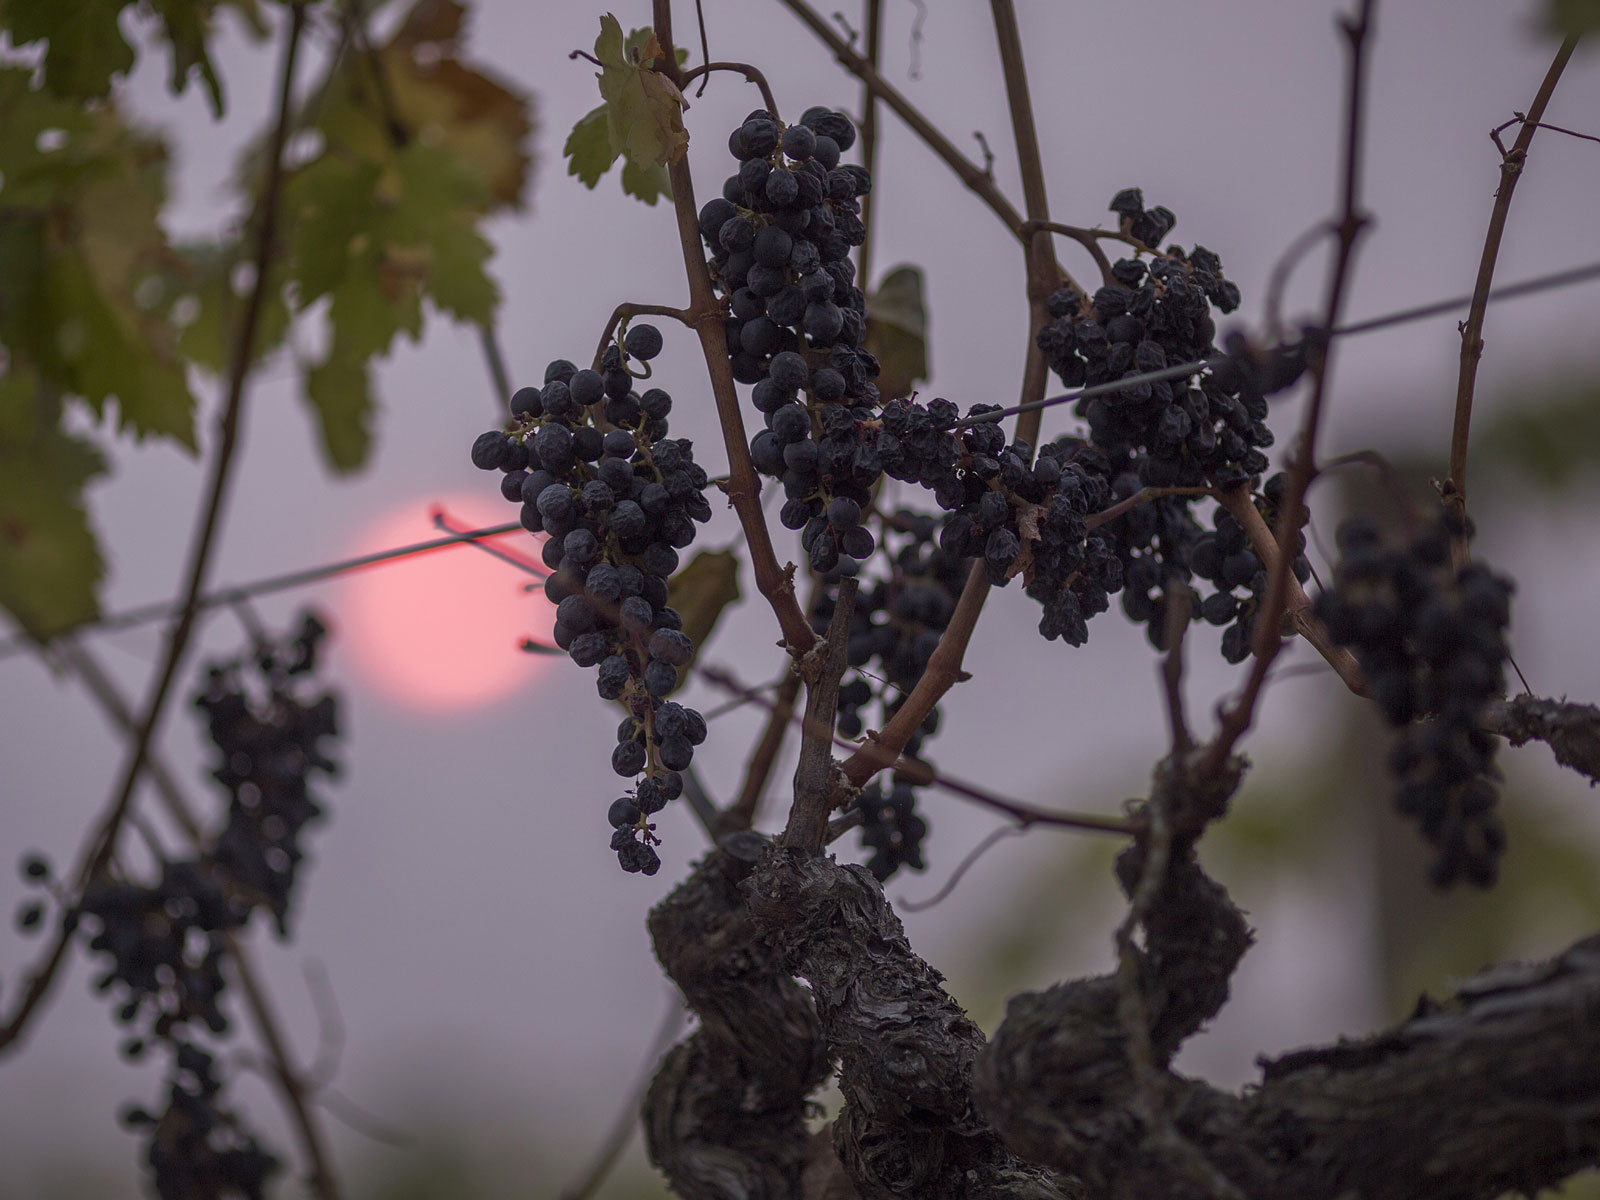 Oregon Solidarity Wines Bails Out (And Bottles) Smoke-Tainted Grapes